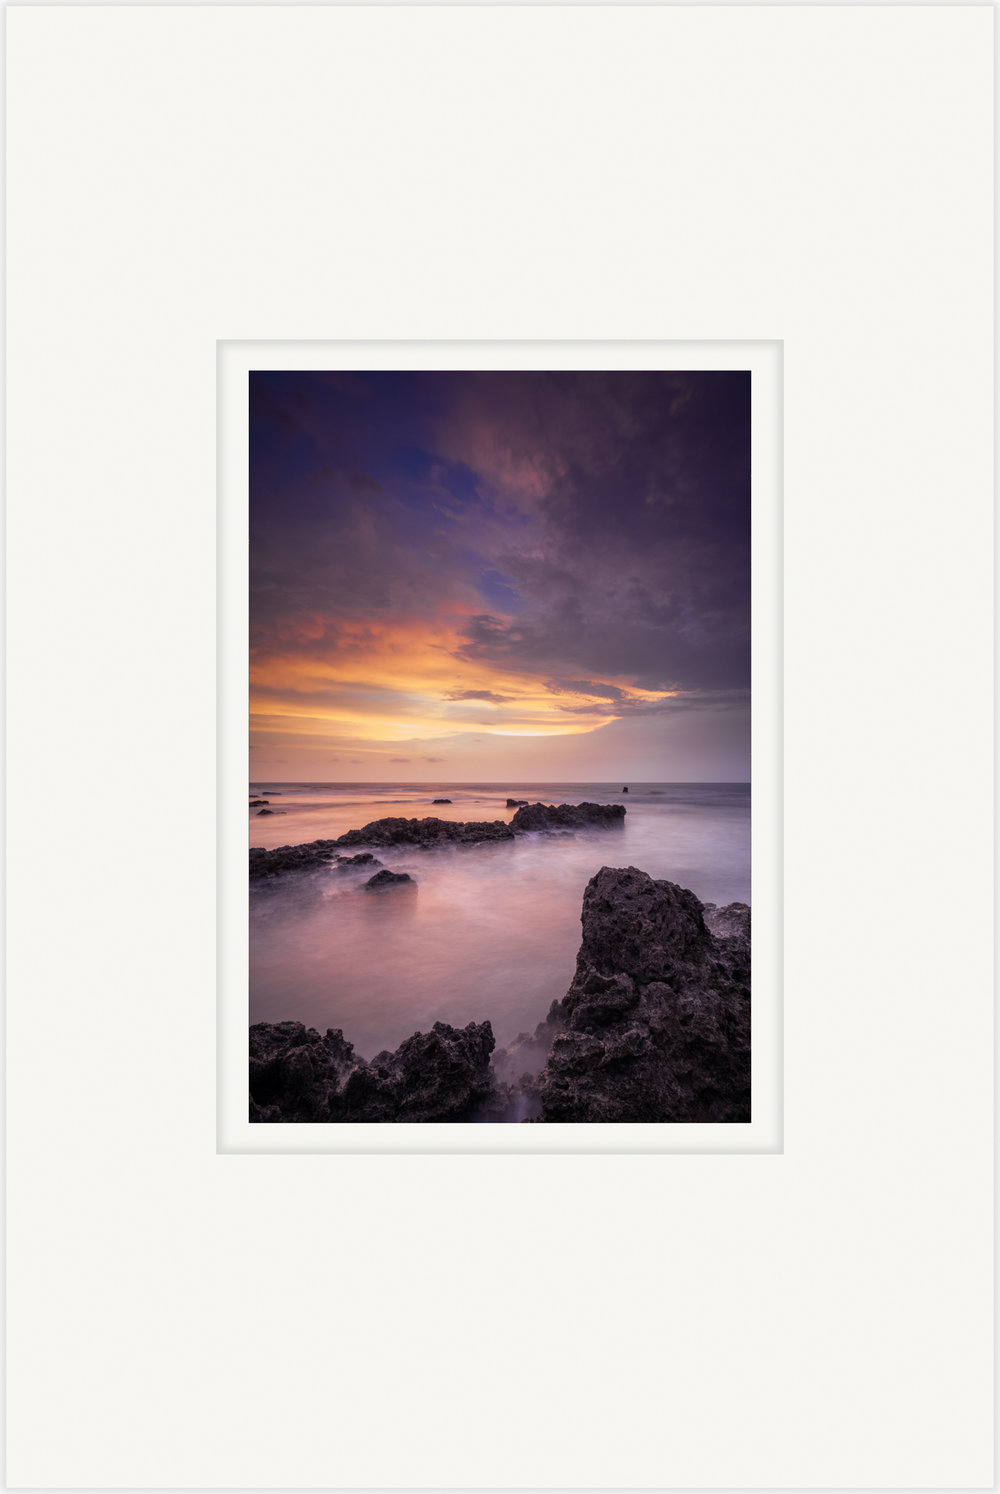 Anjer Dusk II 10cm x 15cm Photo Paper Limited Edition of 99 IDR 249,000